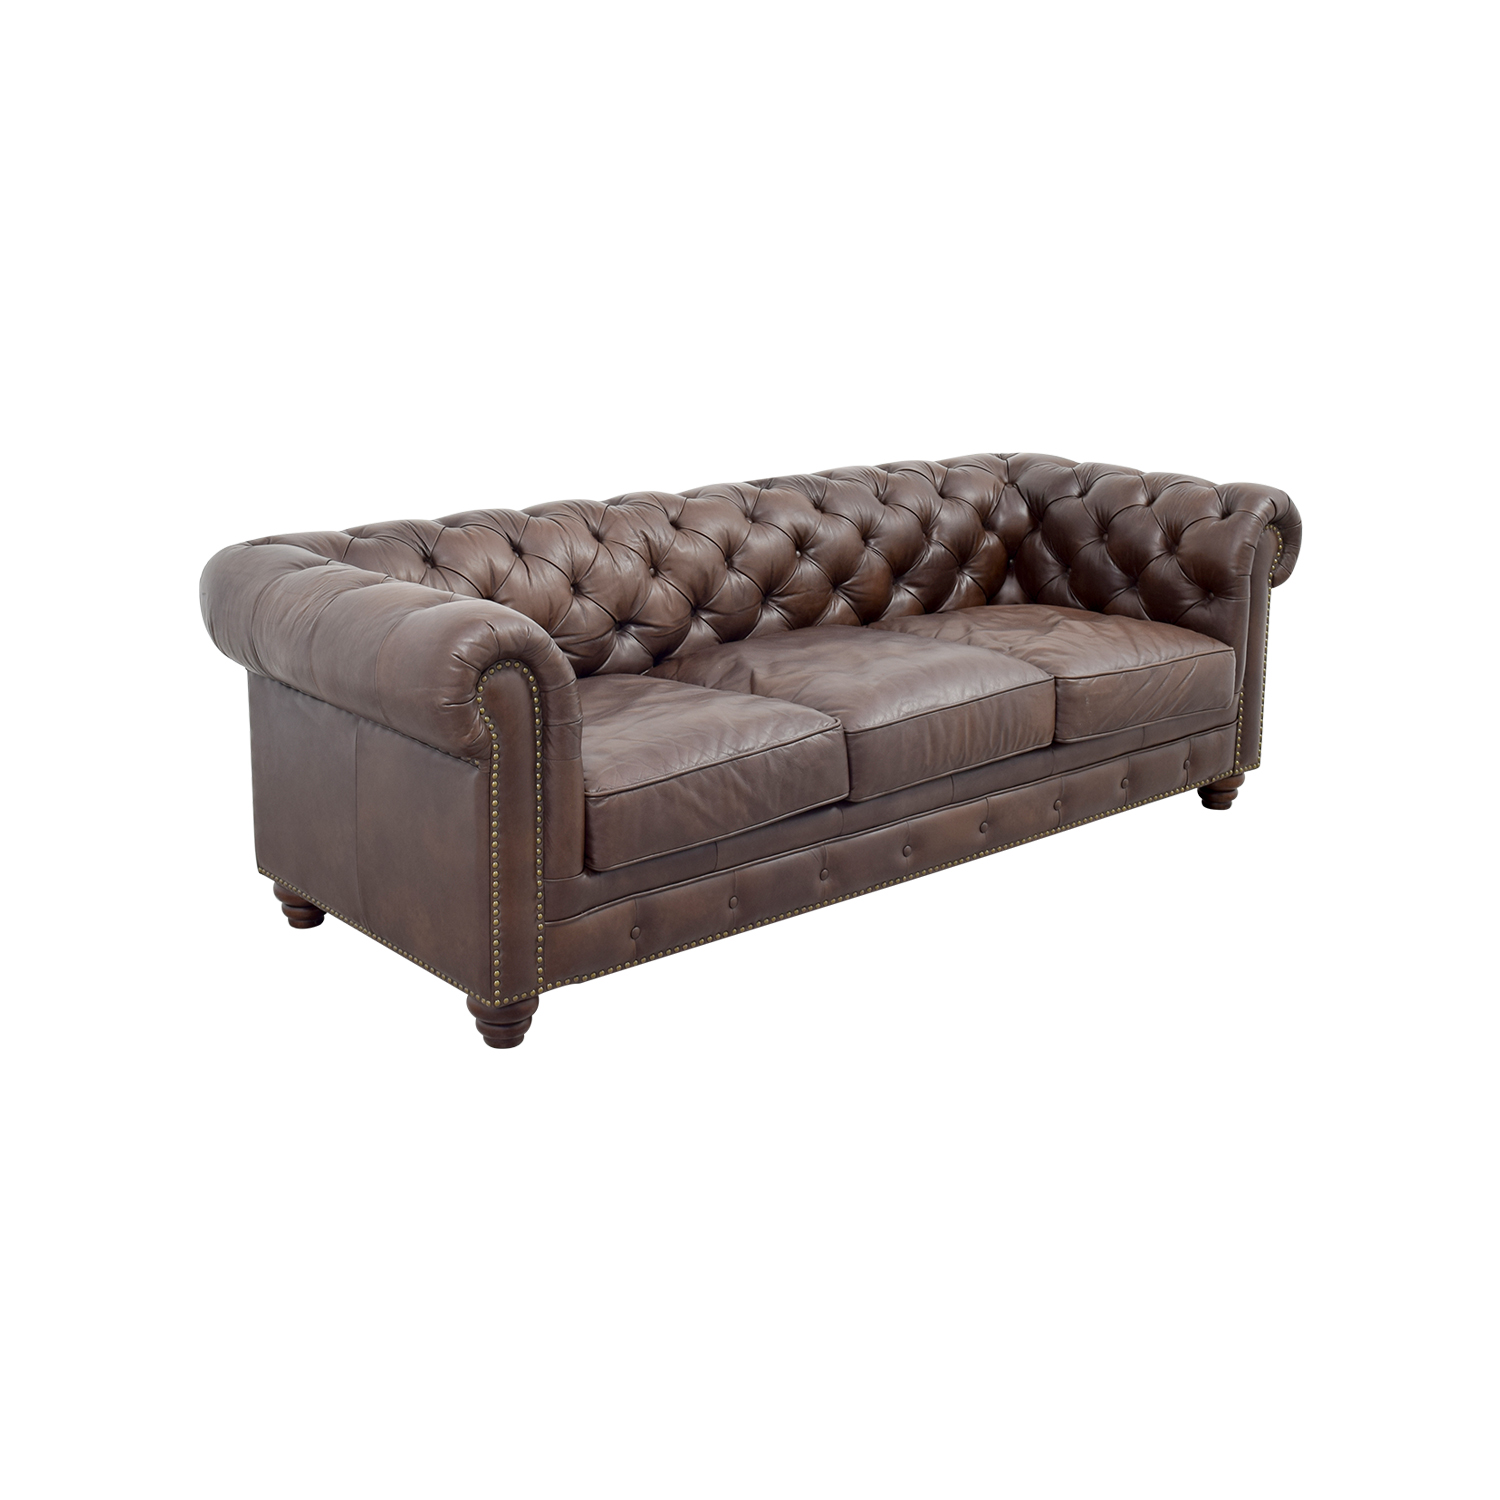 leather sofas second hand glasgow 72 inch sofa bellanest home the honoroak